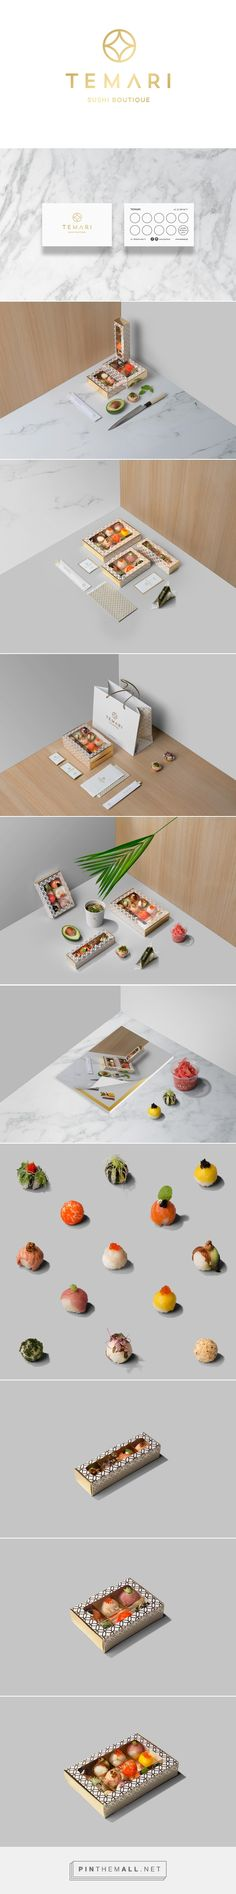 TEMΛRI Sushi Boutique Branding and Packaging by Lange & Lange | Fivestar Branding Agency – Design and Branding Agency & Curated Inspiration Gallery